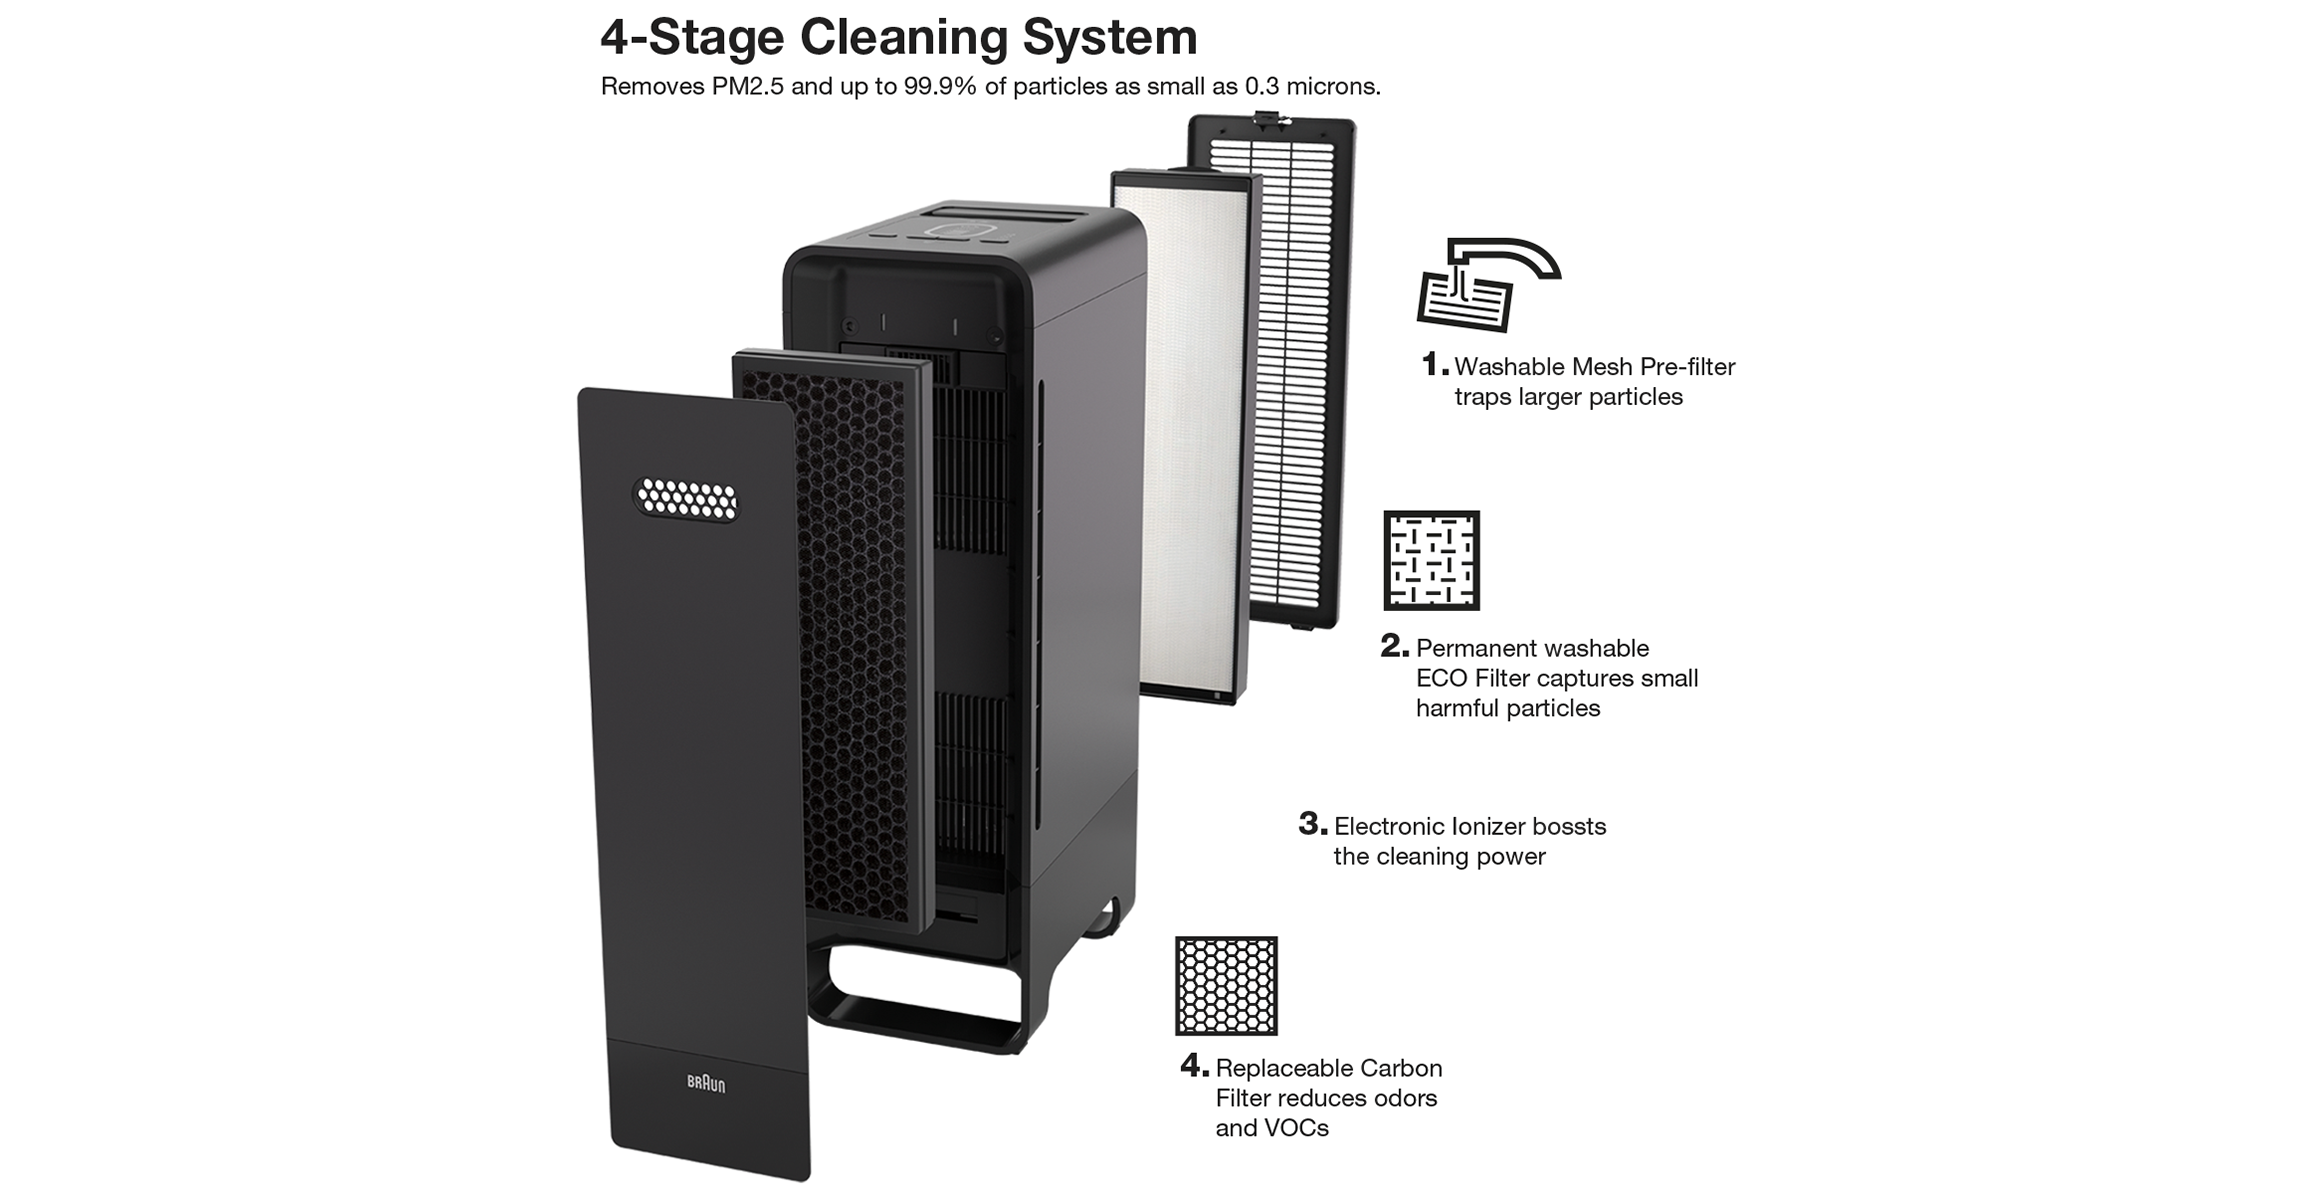 Braun BFD104B SensorAir™ Air Purifier's 4-stage cleaning system